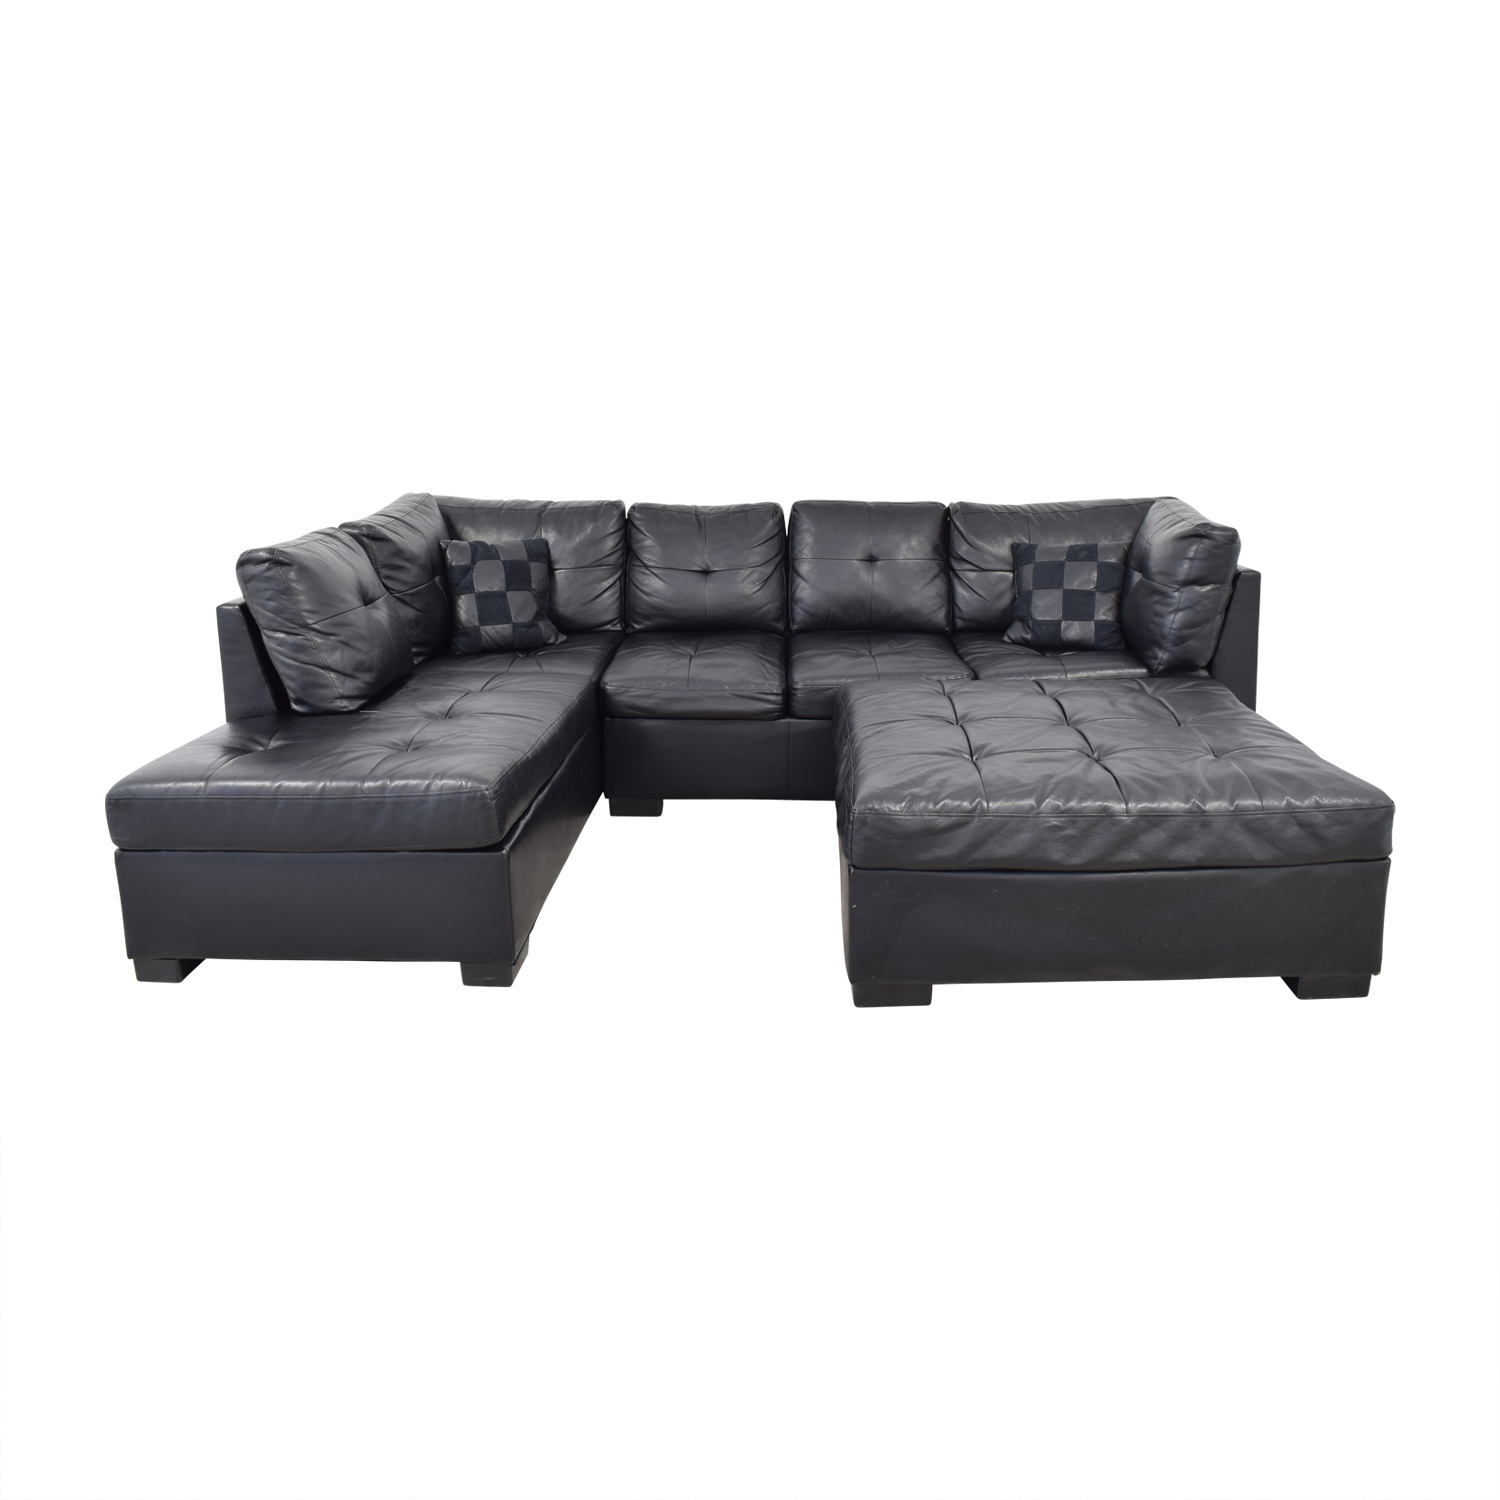 Furniture Chaise 66 Off Coaster Fine Furniture Coaster Fine Furniture Black Tufted Chaise Sectional With Ottoman Sofas